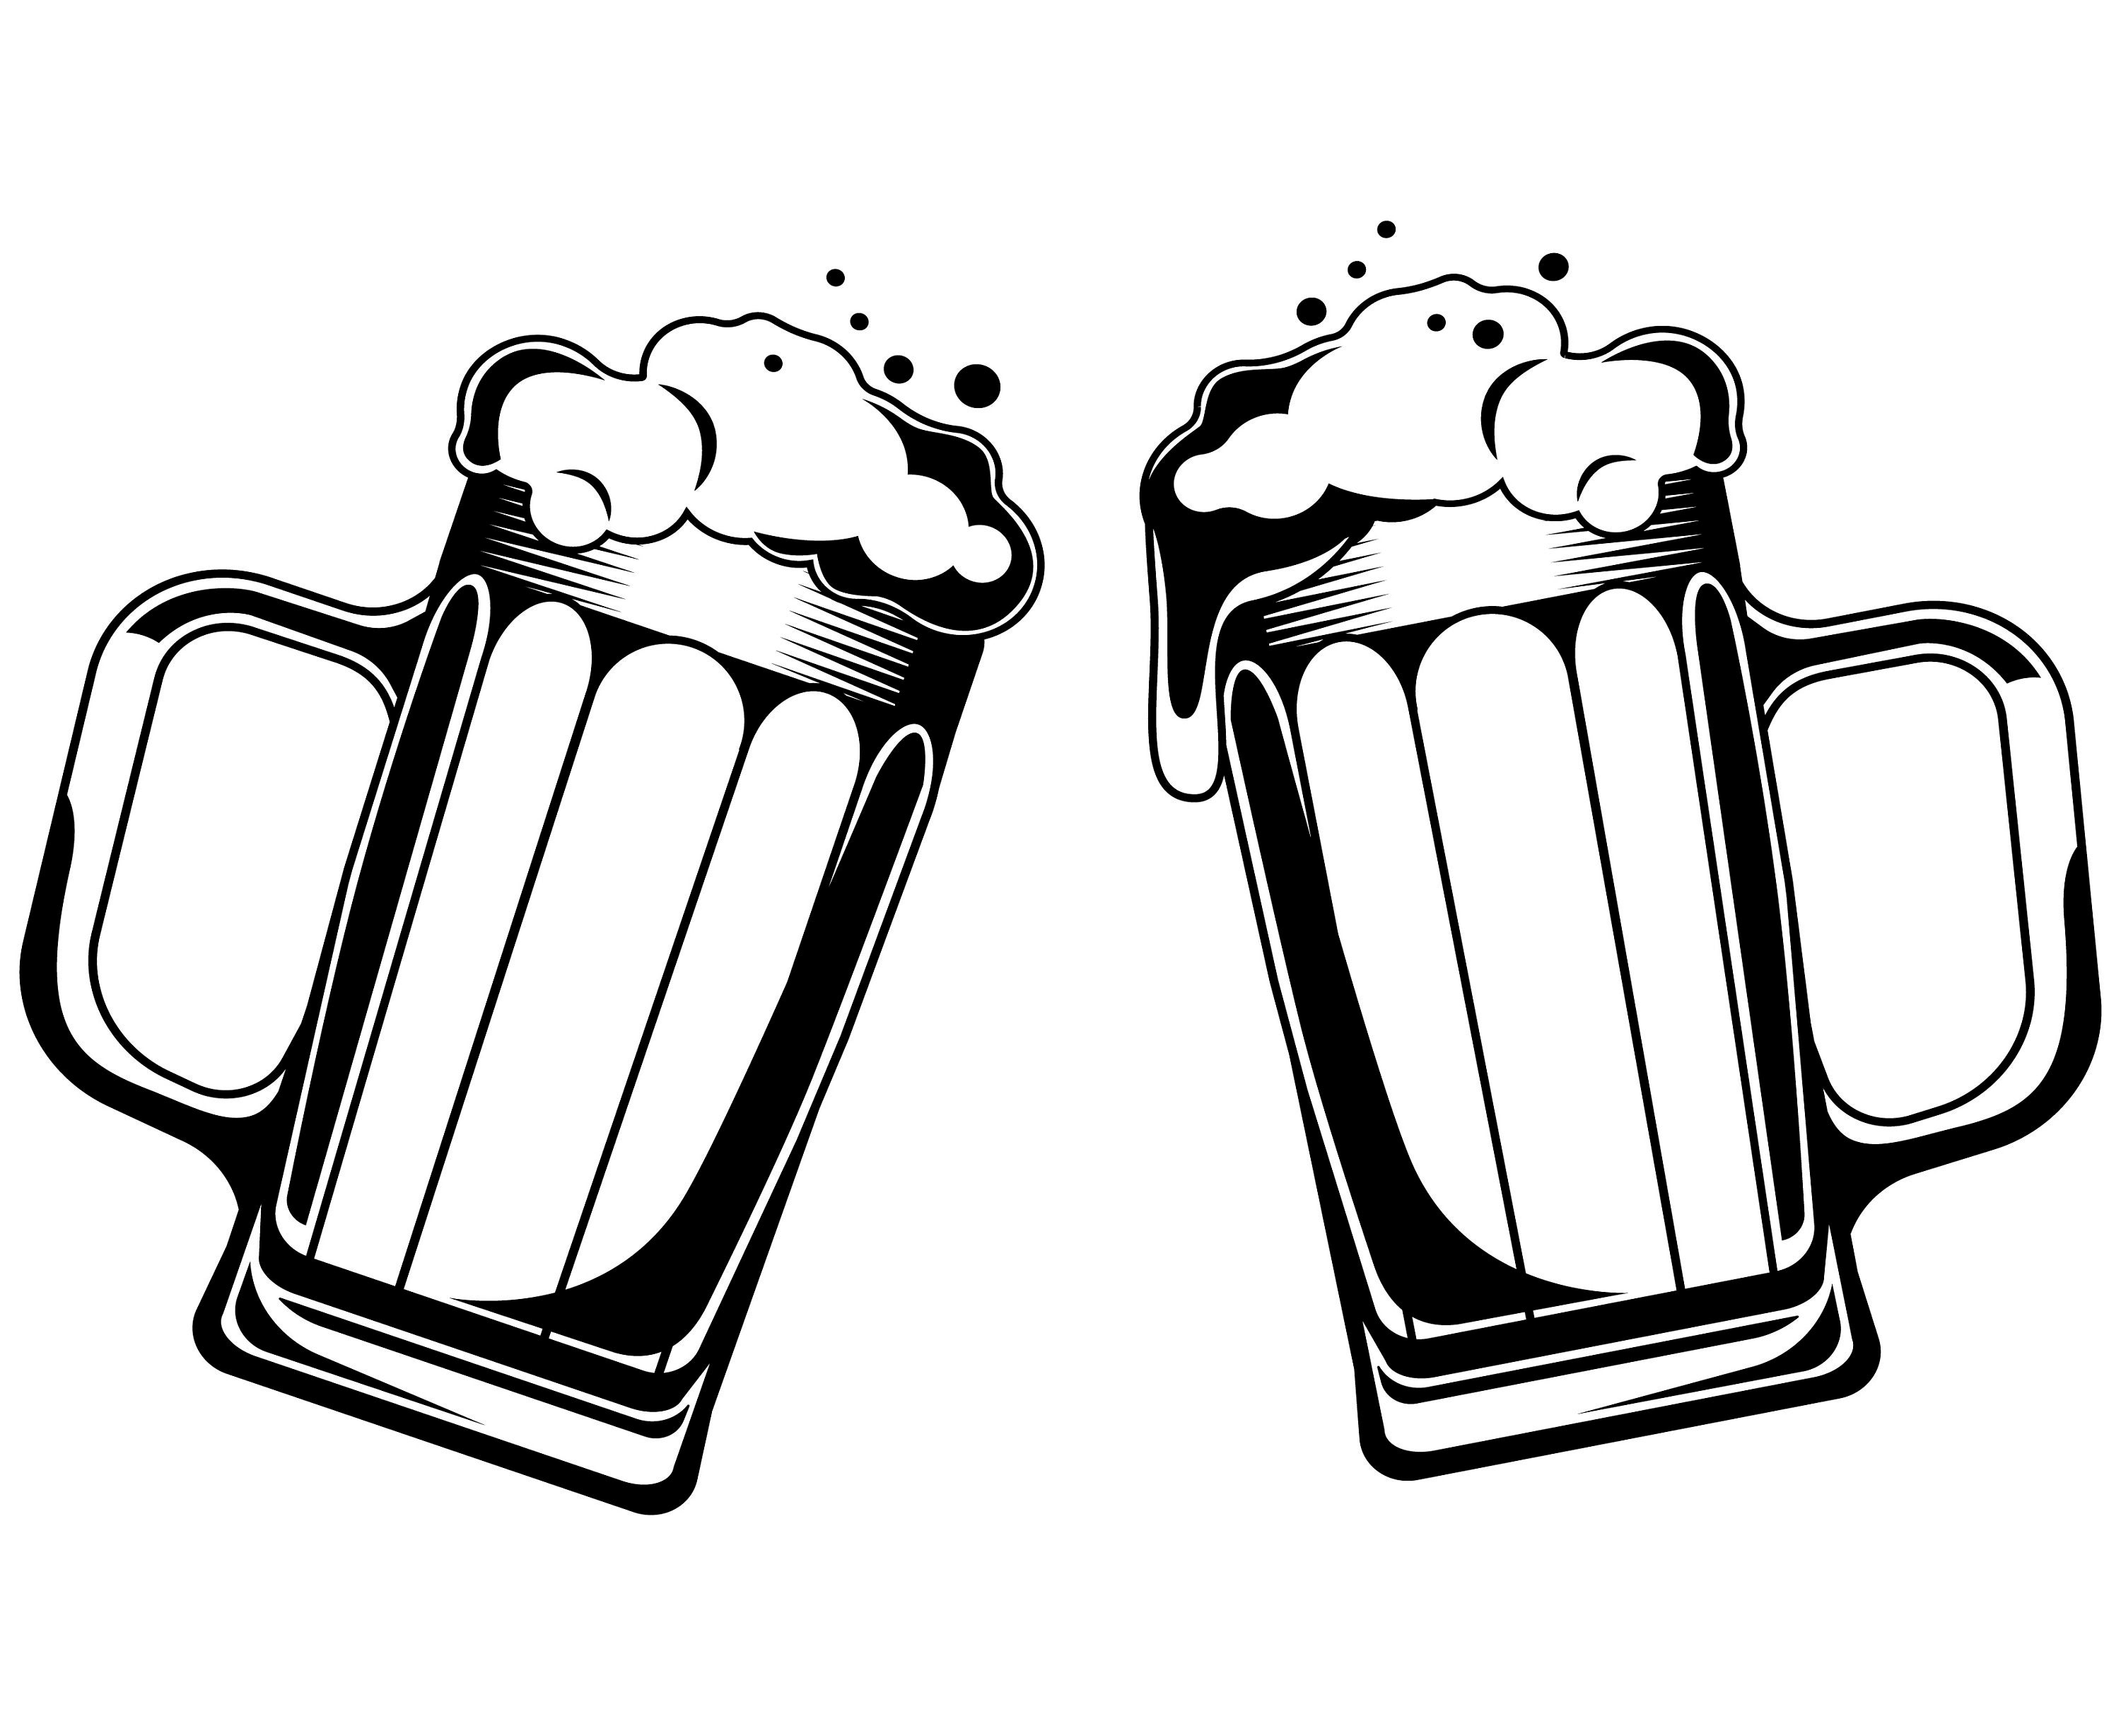 Beer clipart drawing. Glass free download best